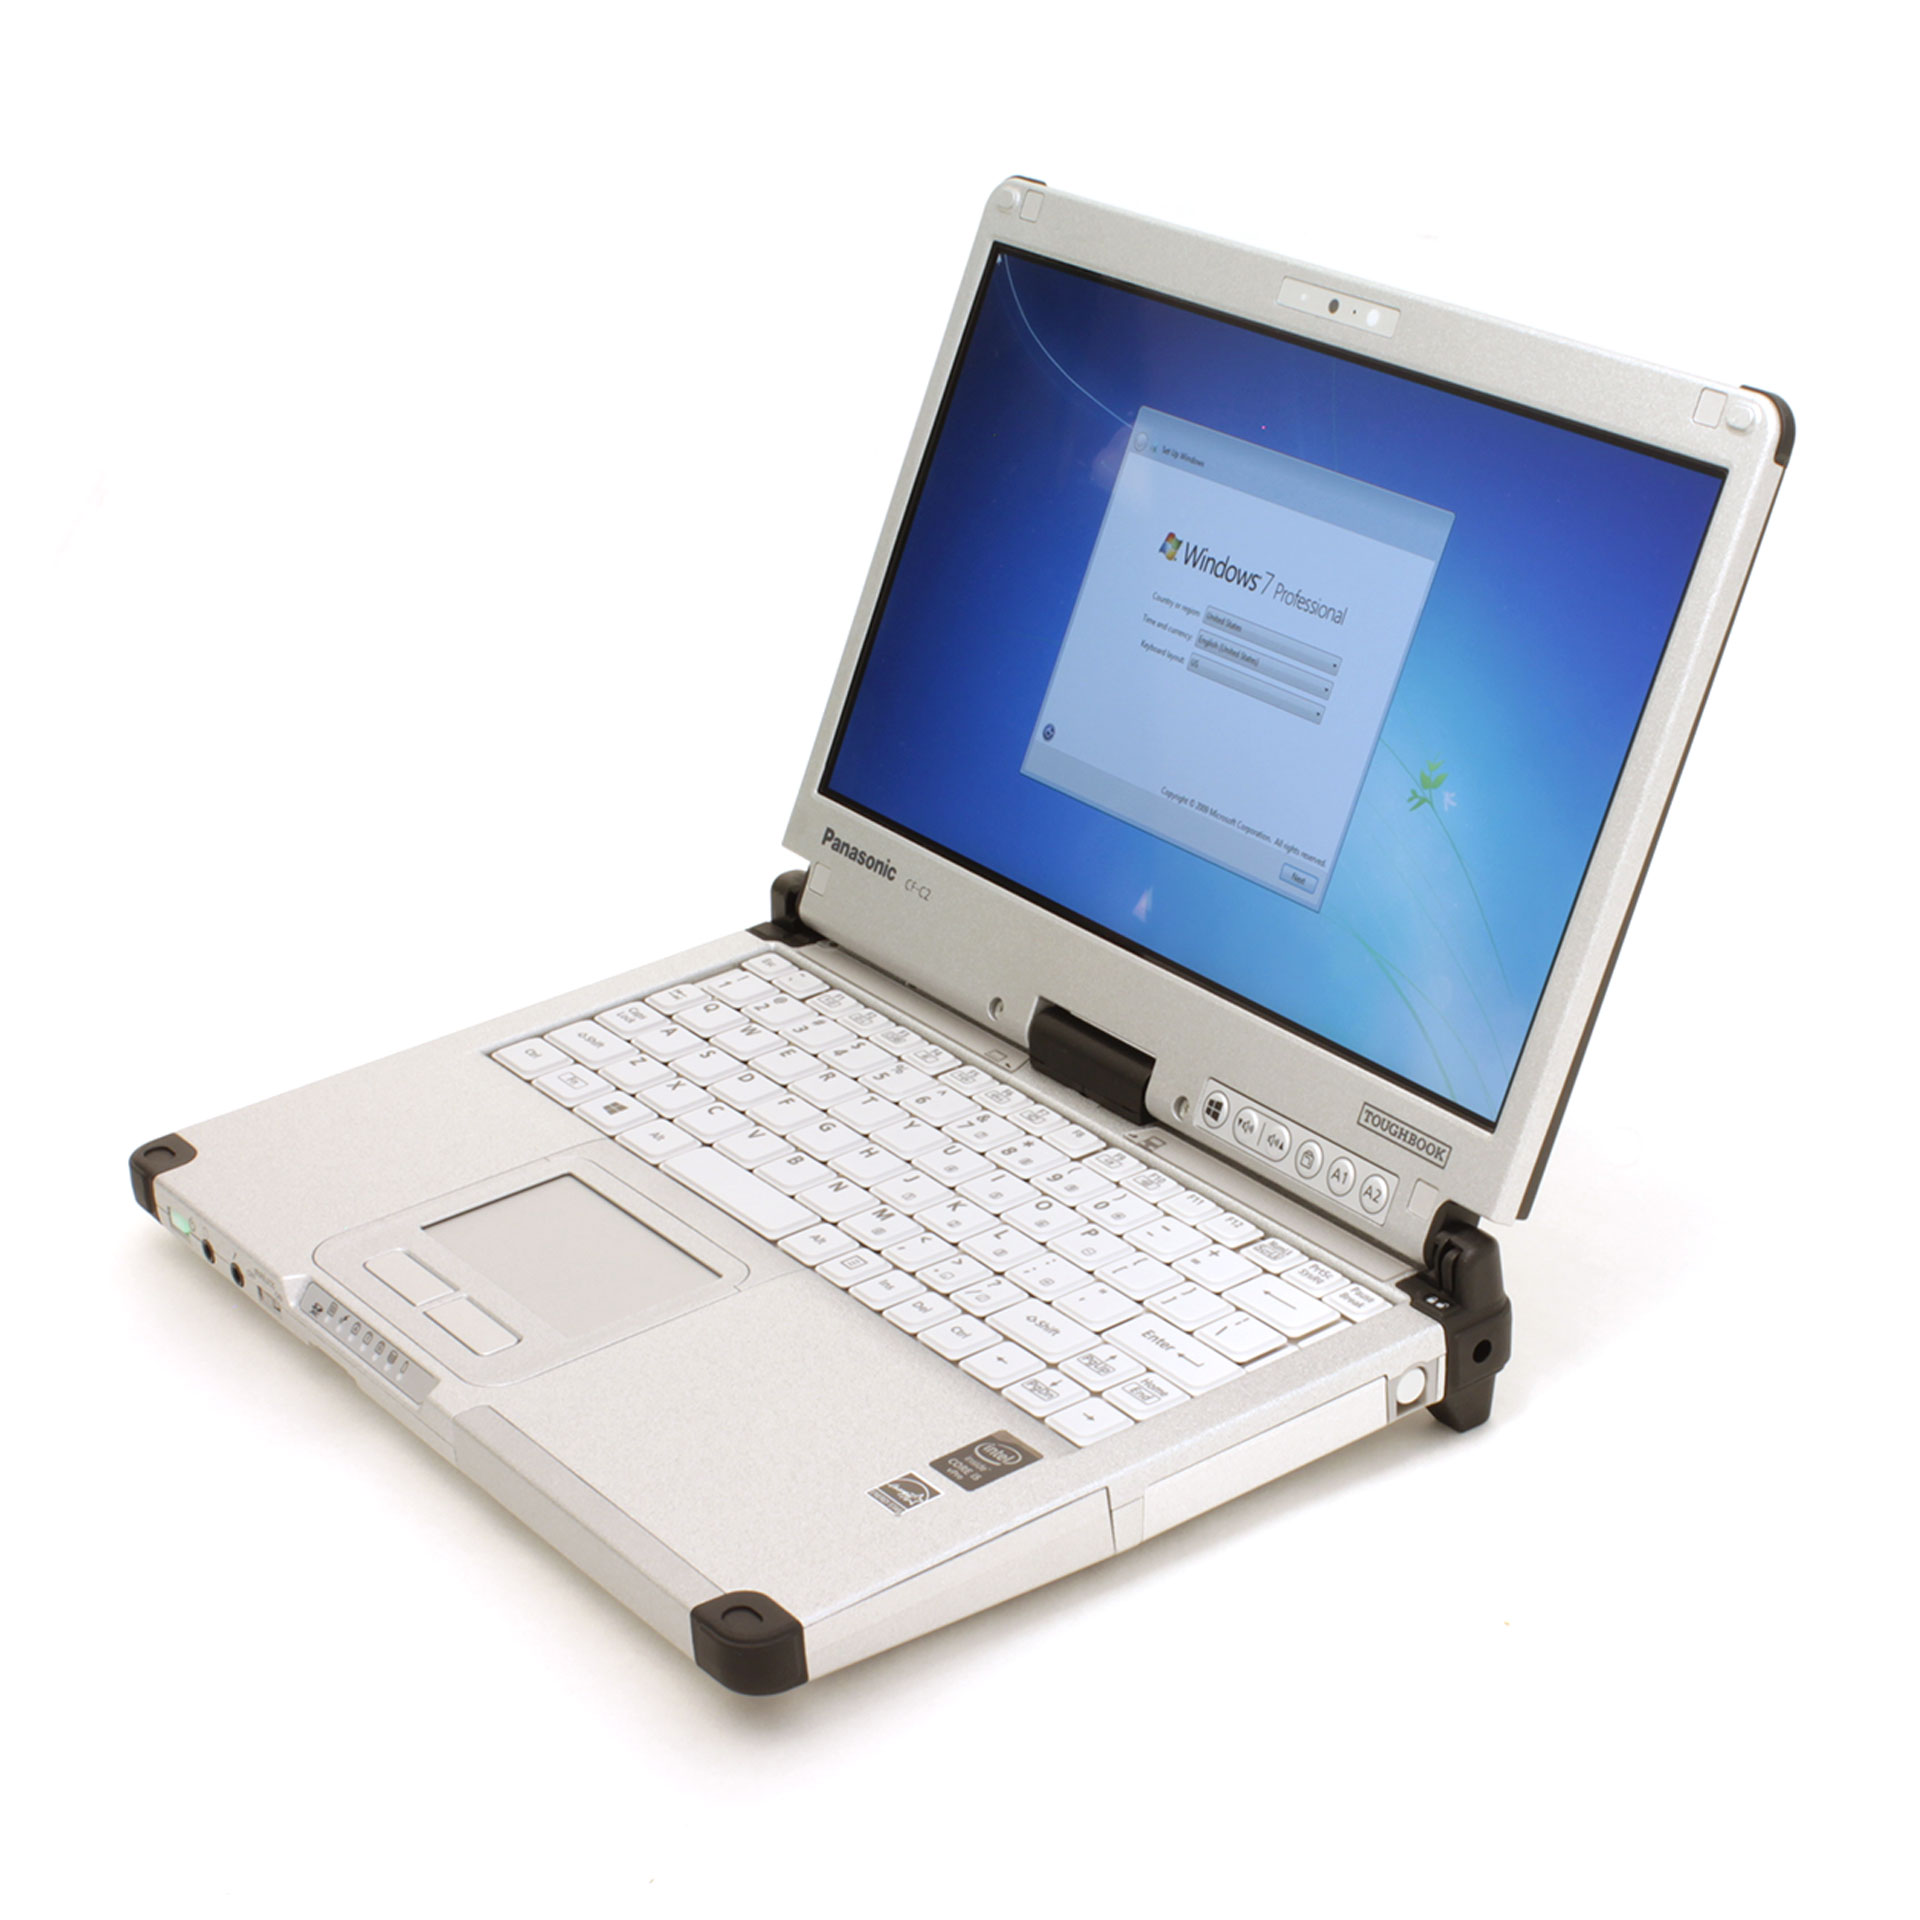 "Panasonic Toughbook C2 I5-4310U 8GB 256GB 12.5"" CF-C2CYHBXKM"